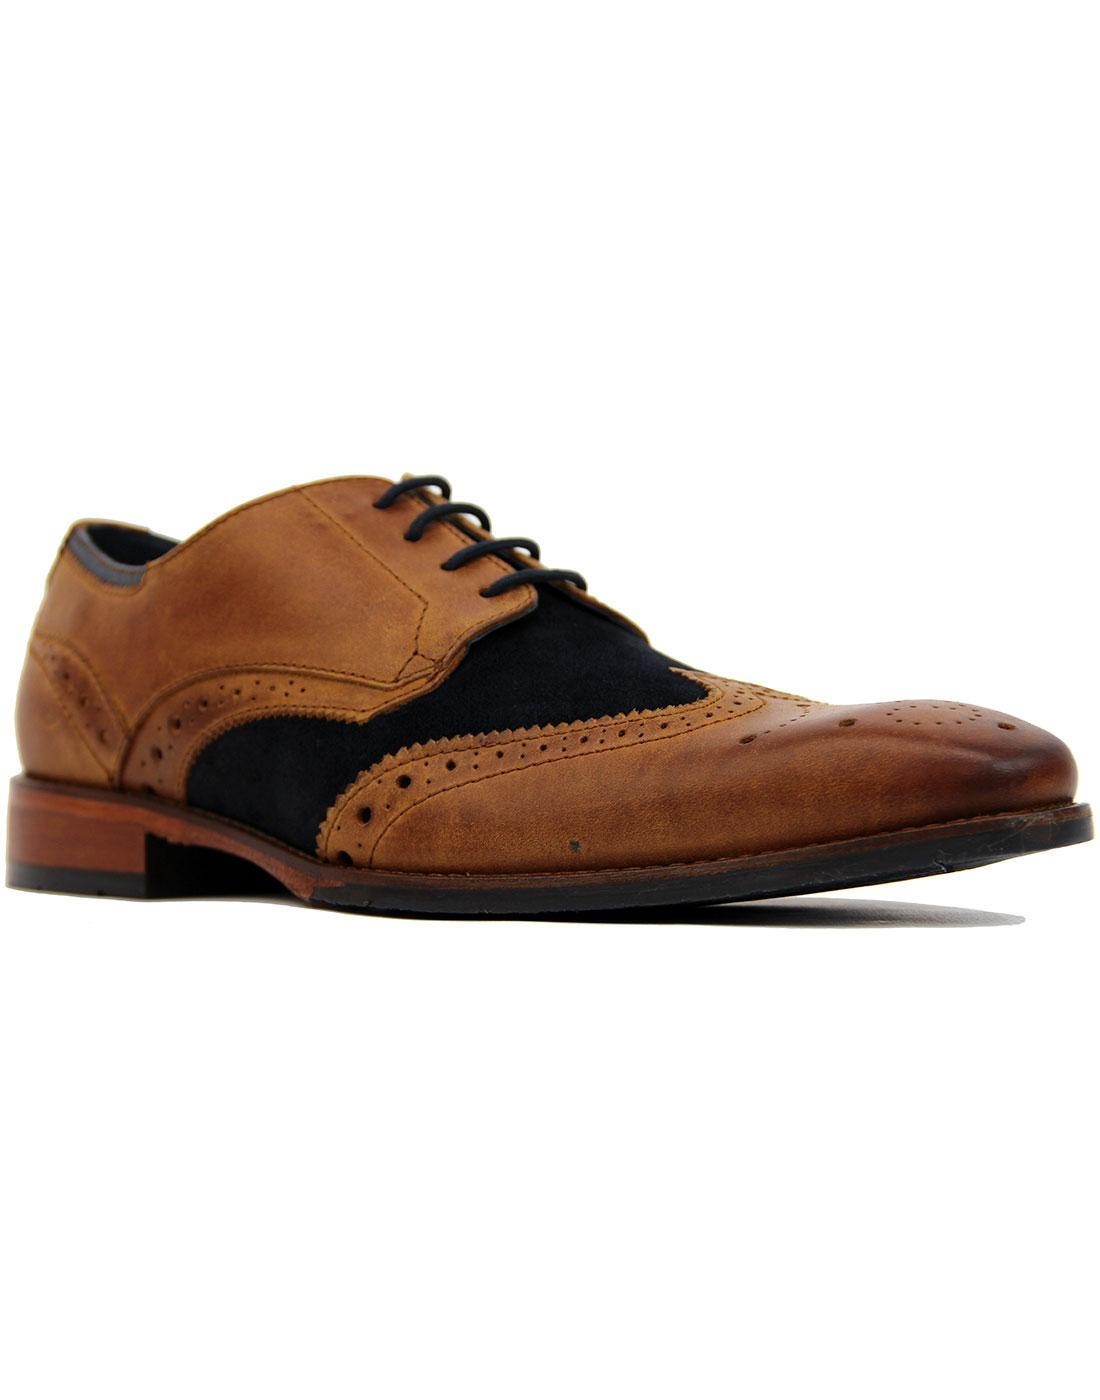 Church GOODWIN SMITH Mod Derby Brogue Shoes